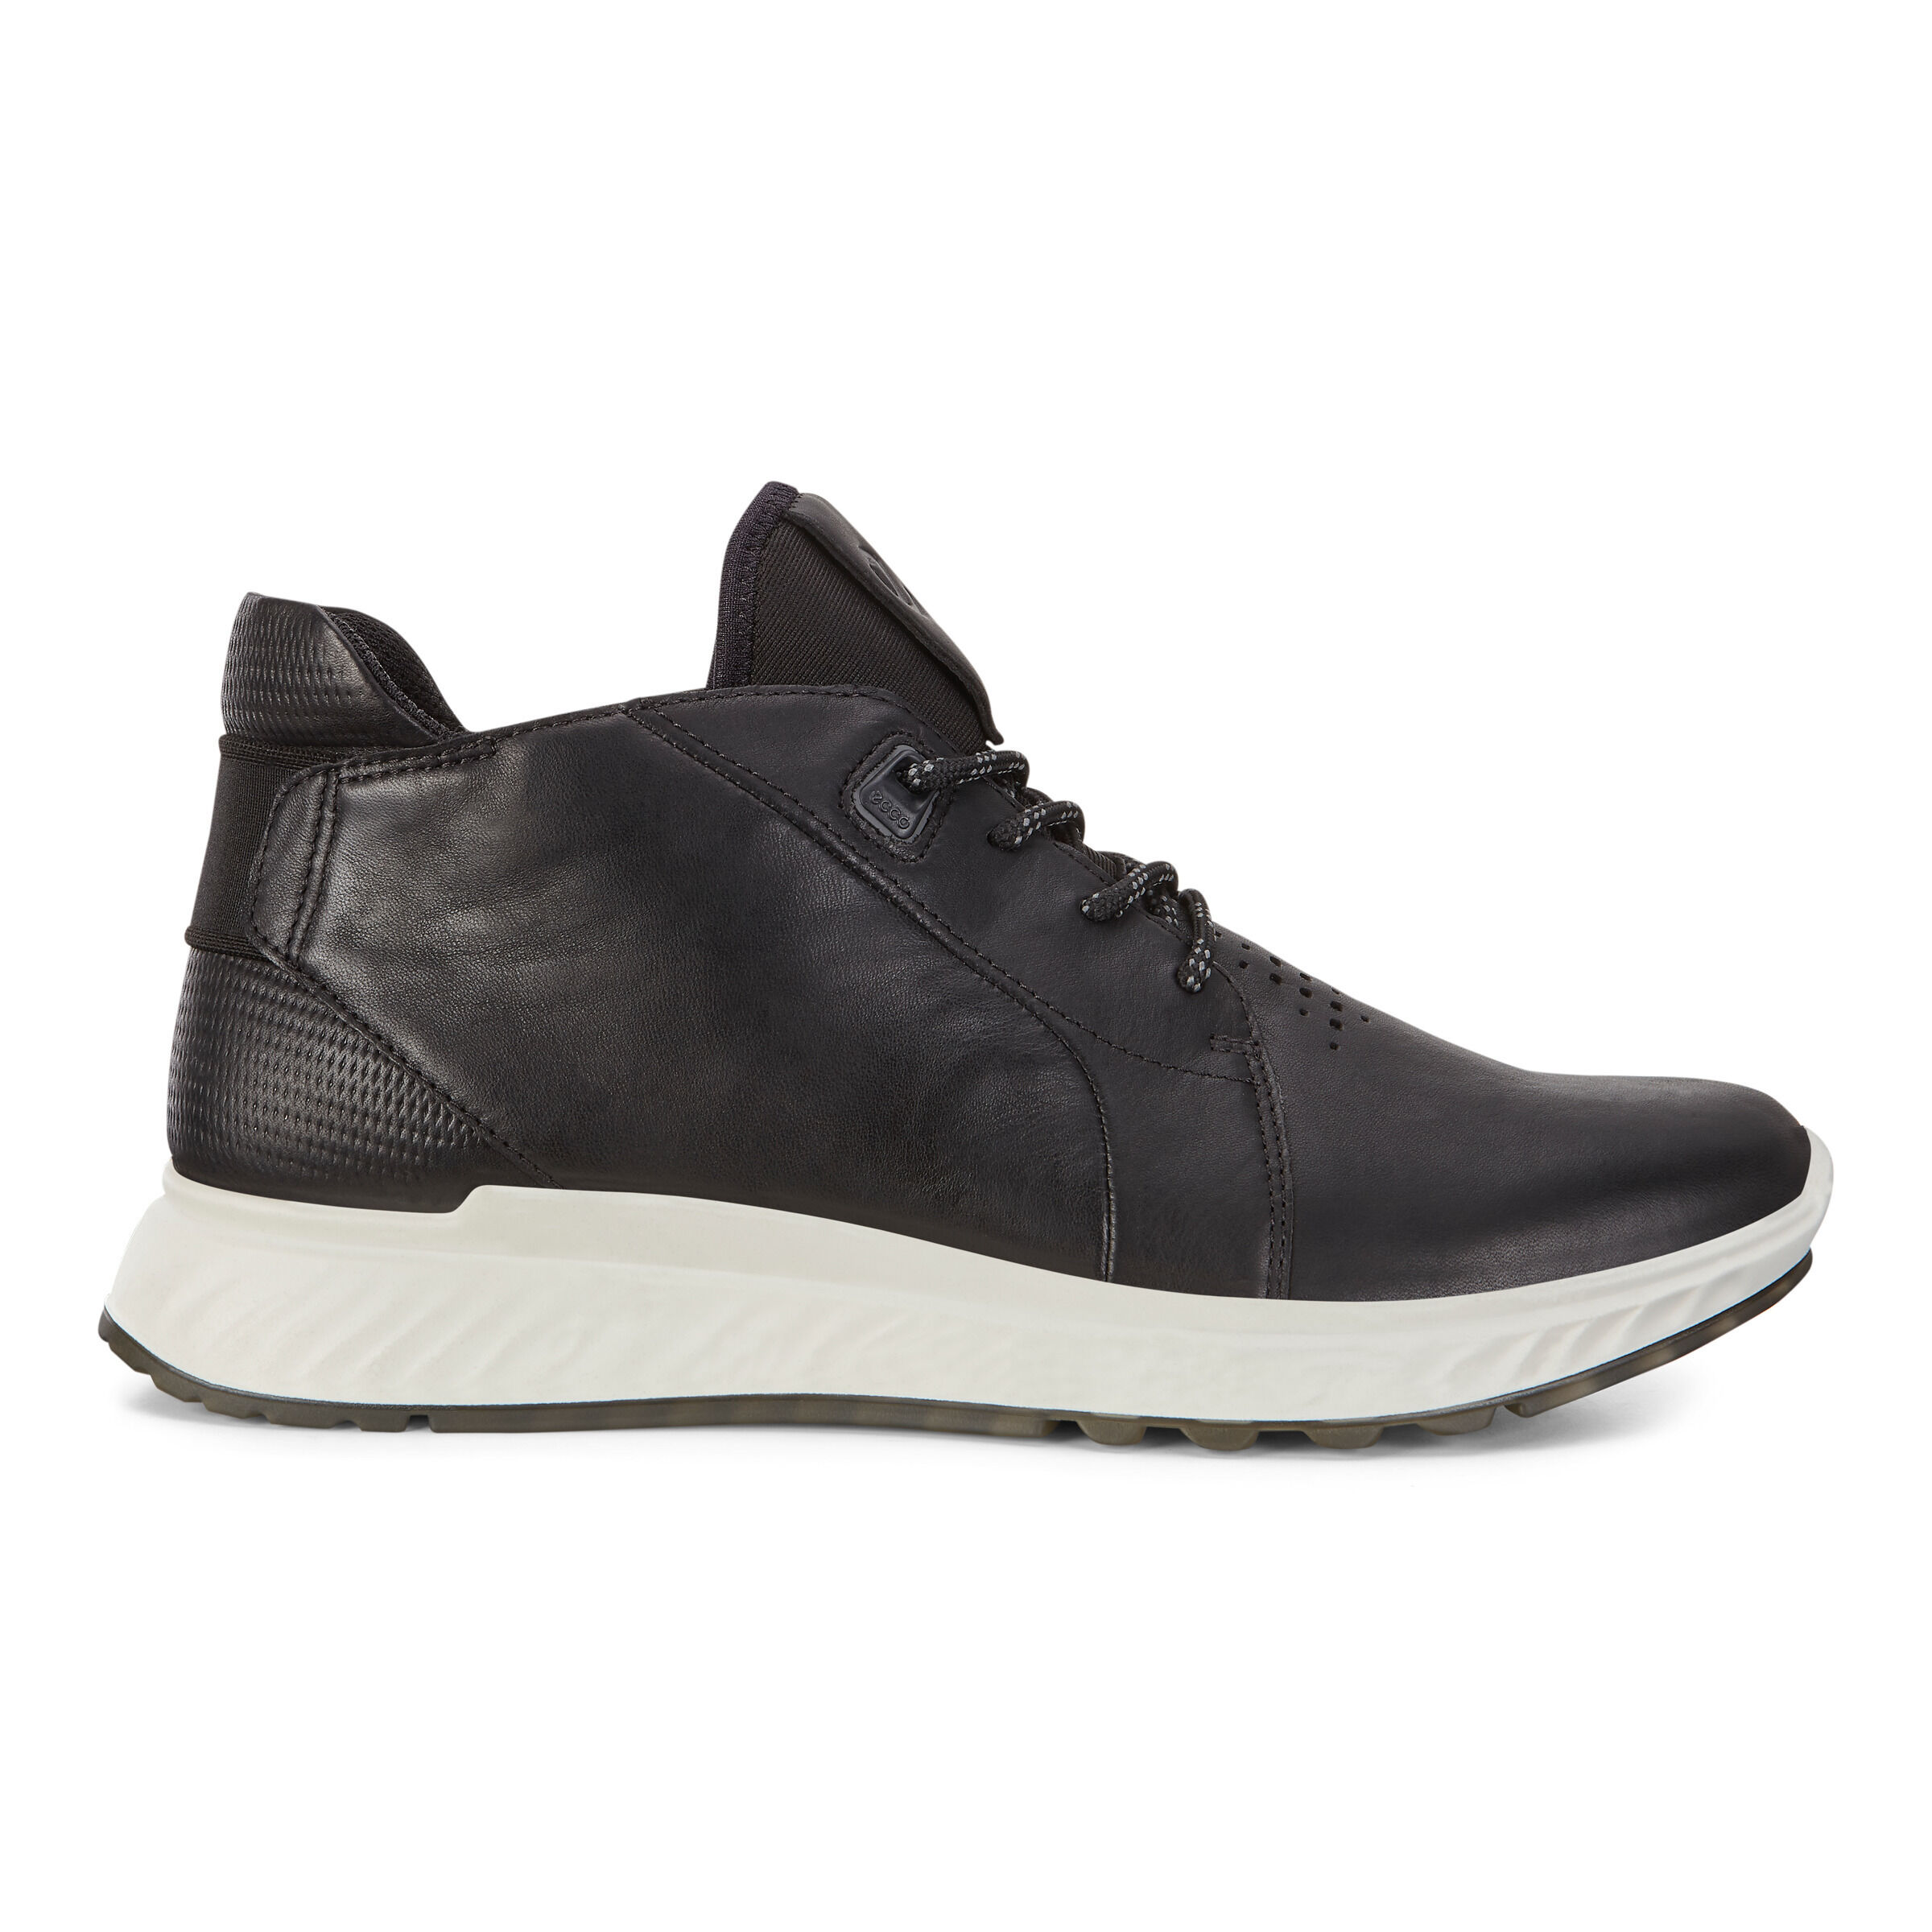 ECCO Mens ST.1 High